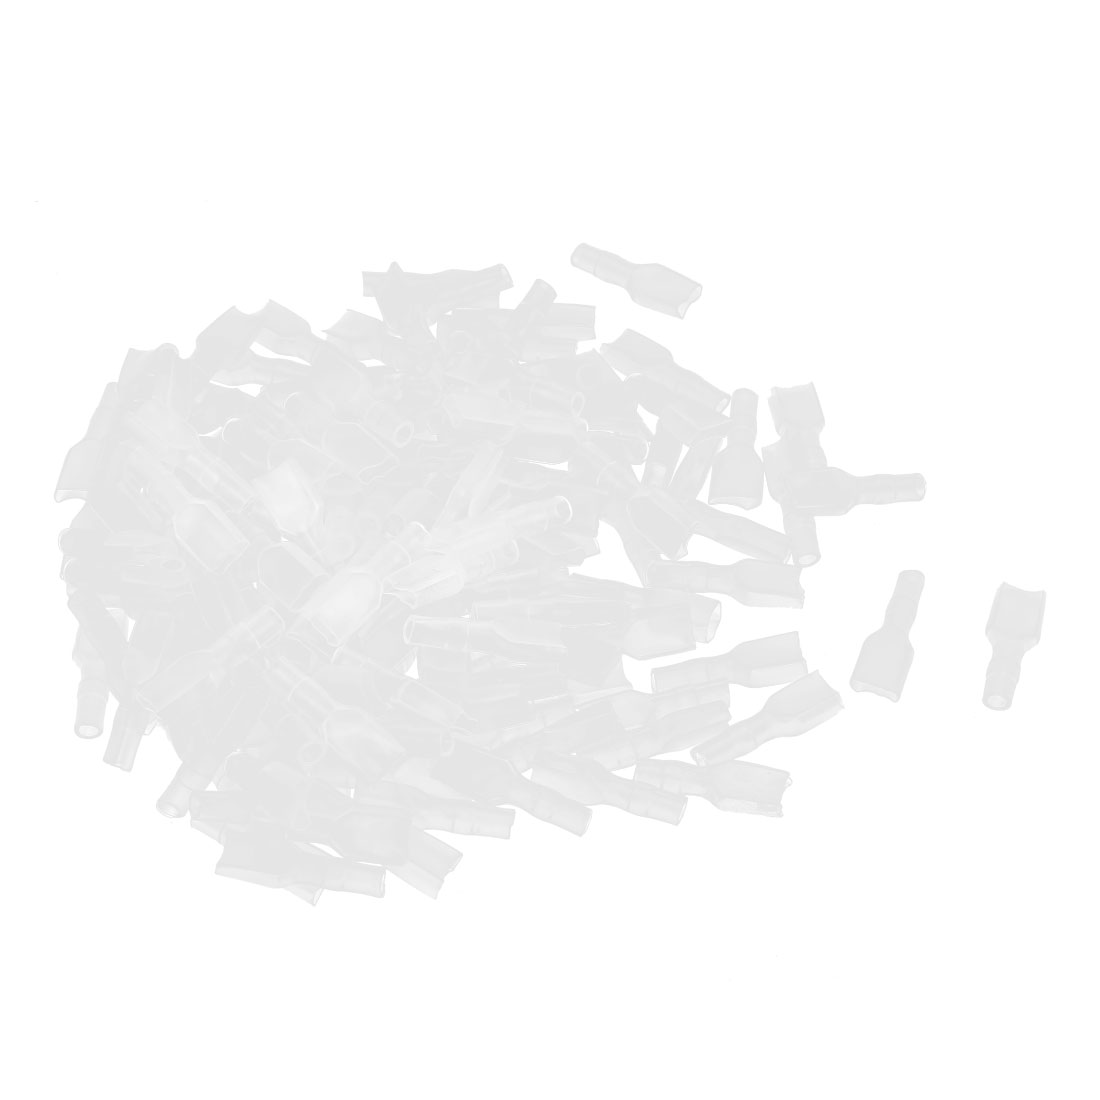 150 Pcs 6.3mm Hole Clear PVC Insulated Ring Terminal Caps Boots Covers